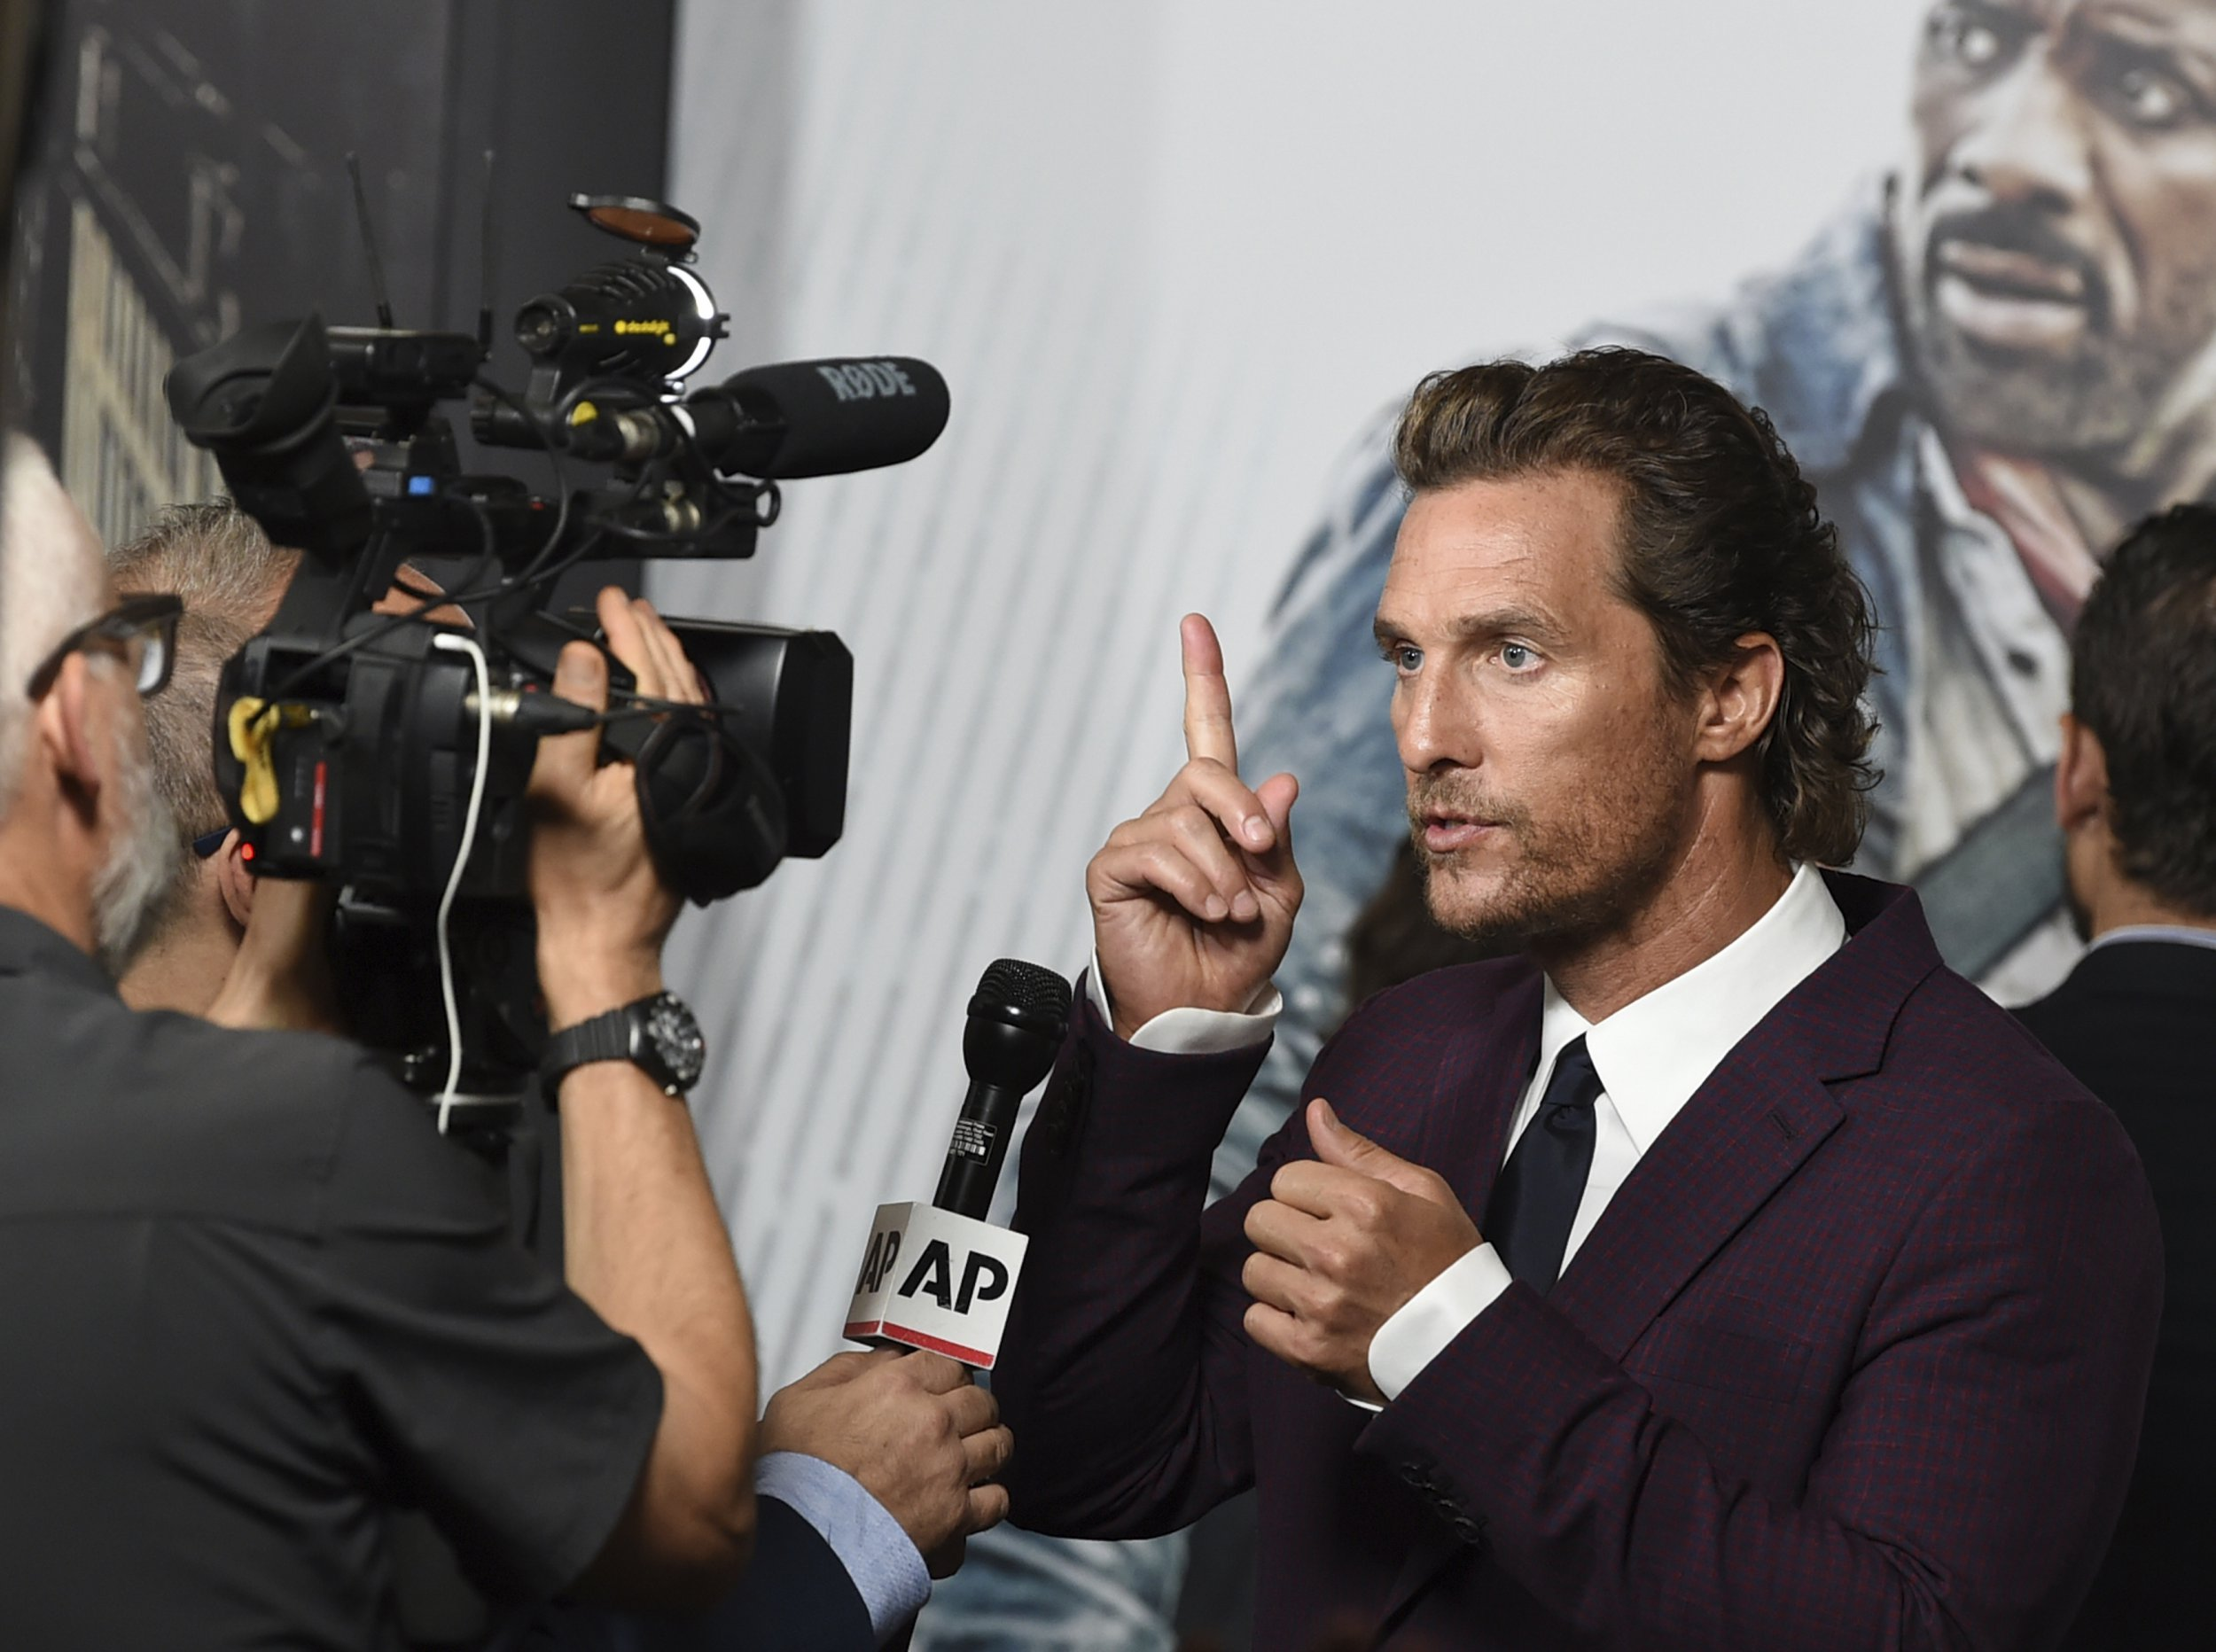 Matthew McConaughey floored after discovering death of Sam Shepard on red carpet